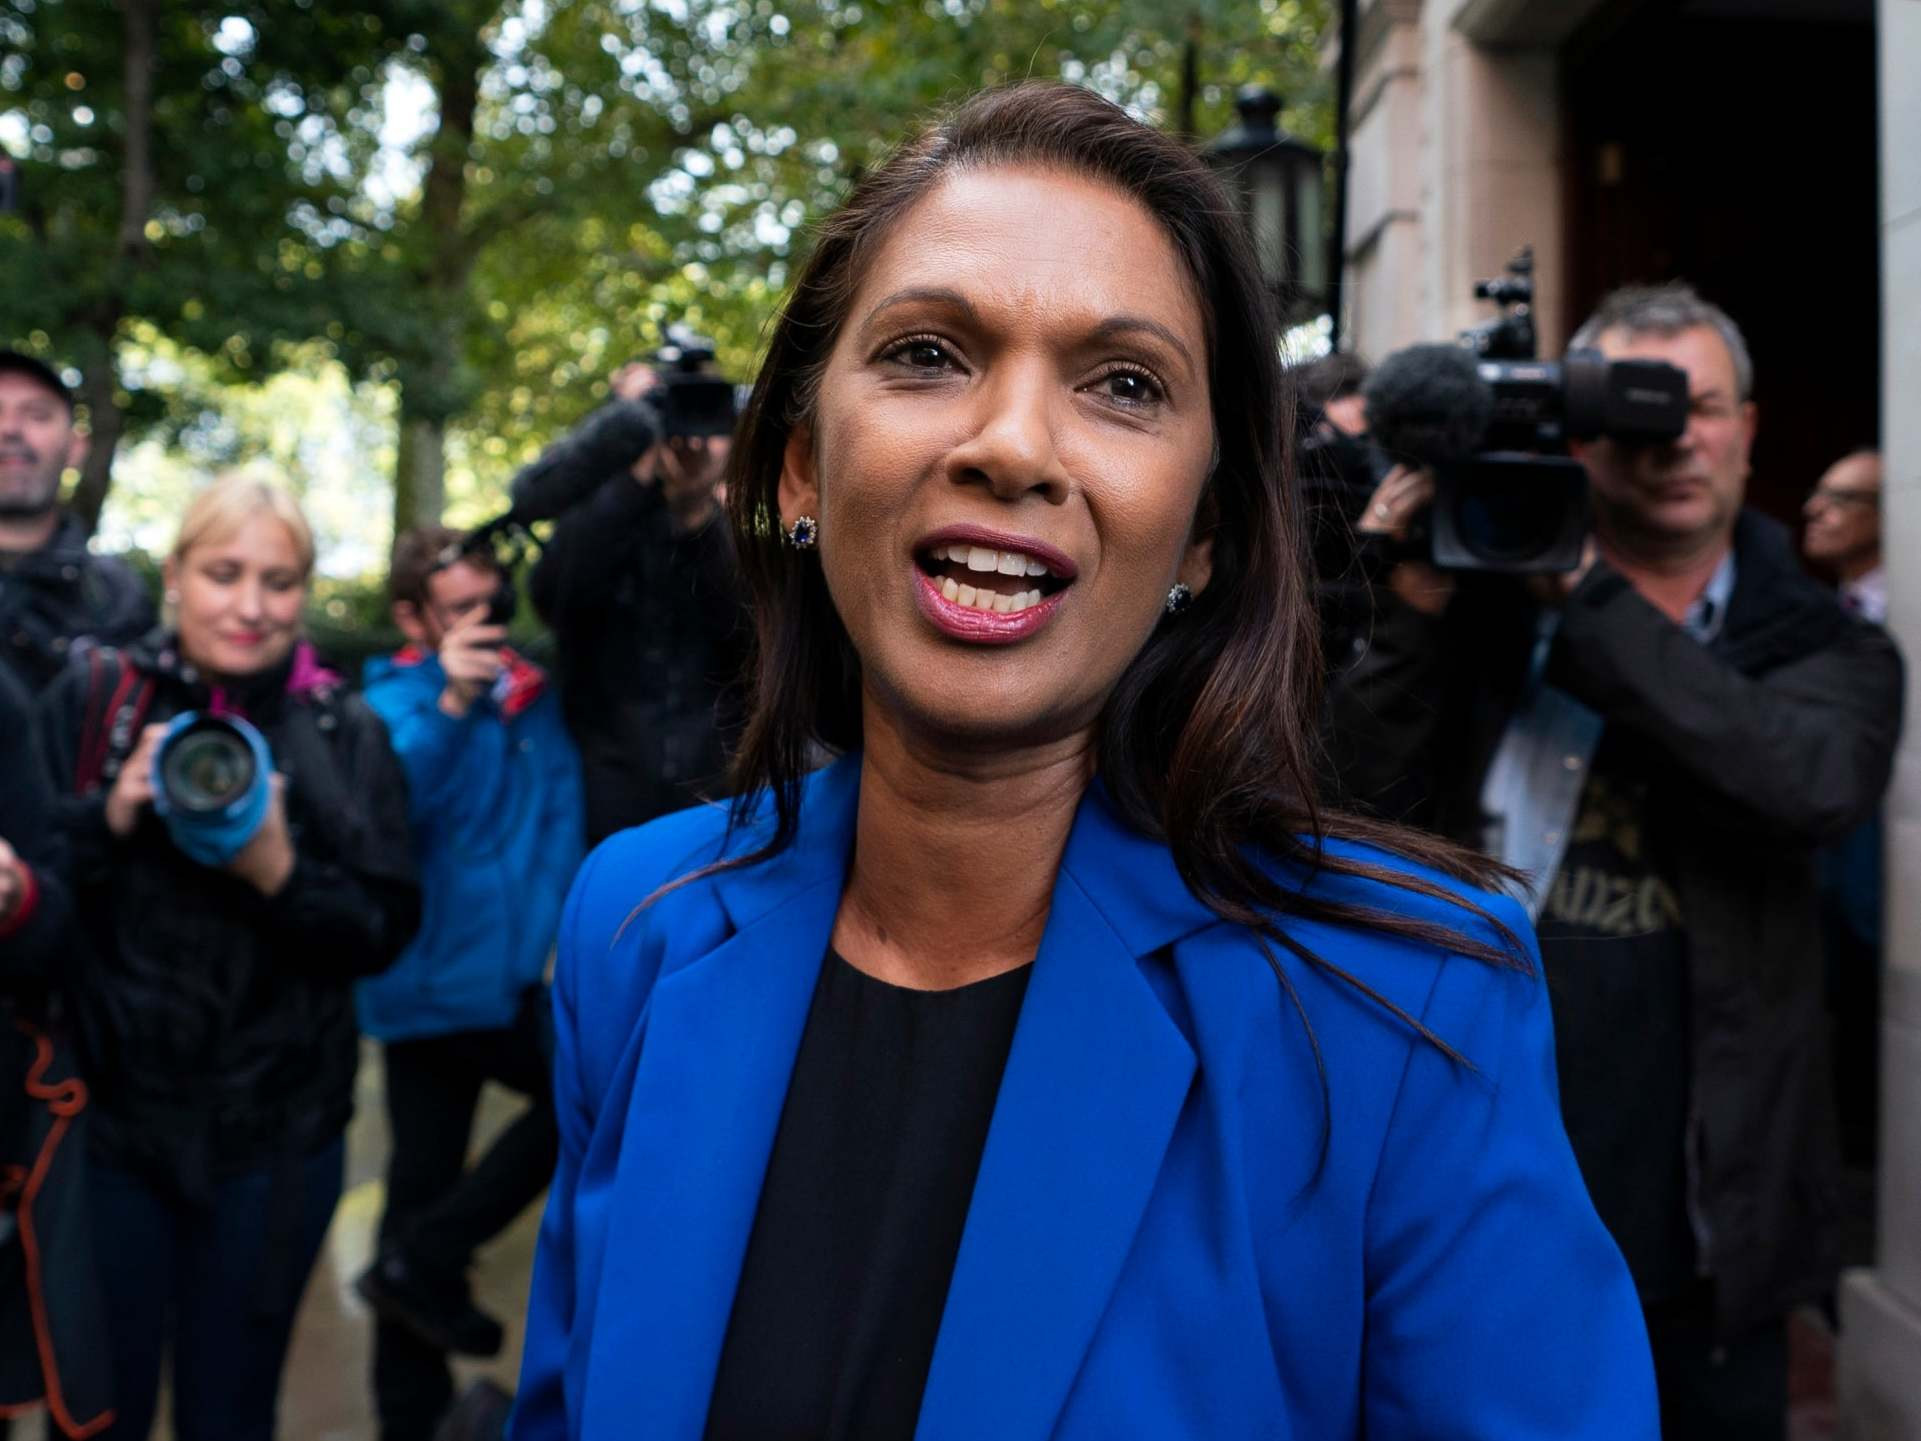 Gina Miller: Anti-Brexit activist 'abused by strangers' while out with young daughter